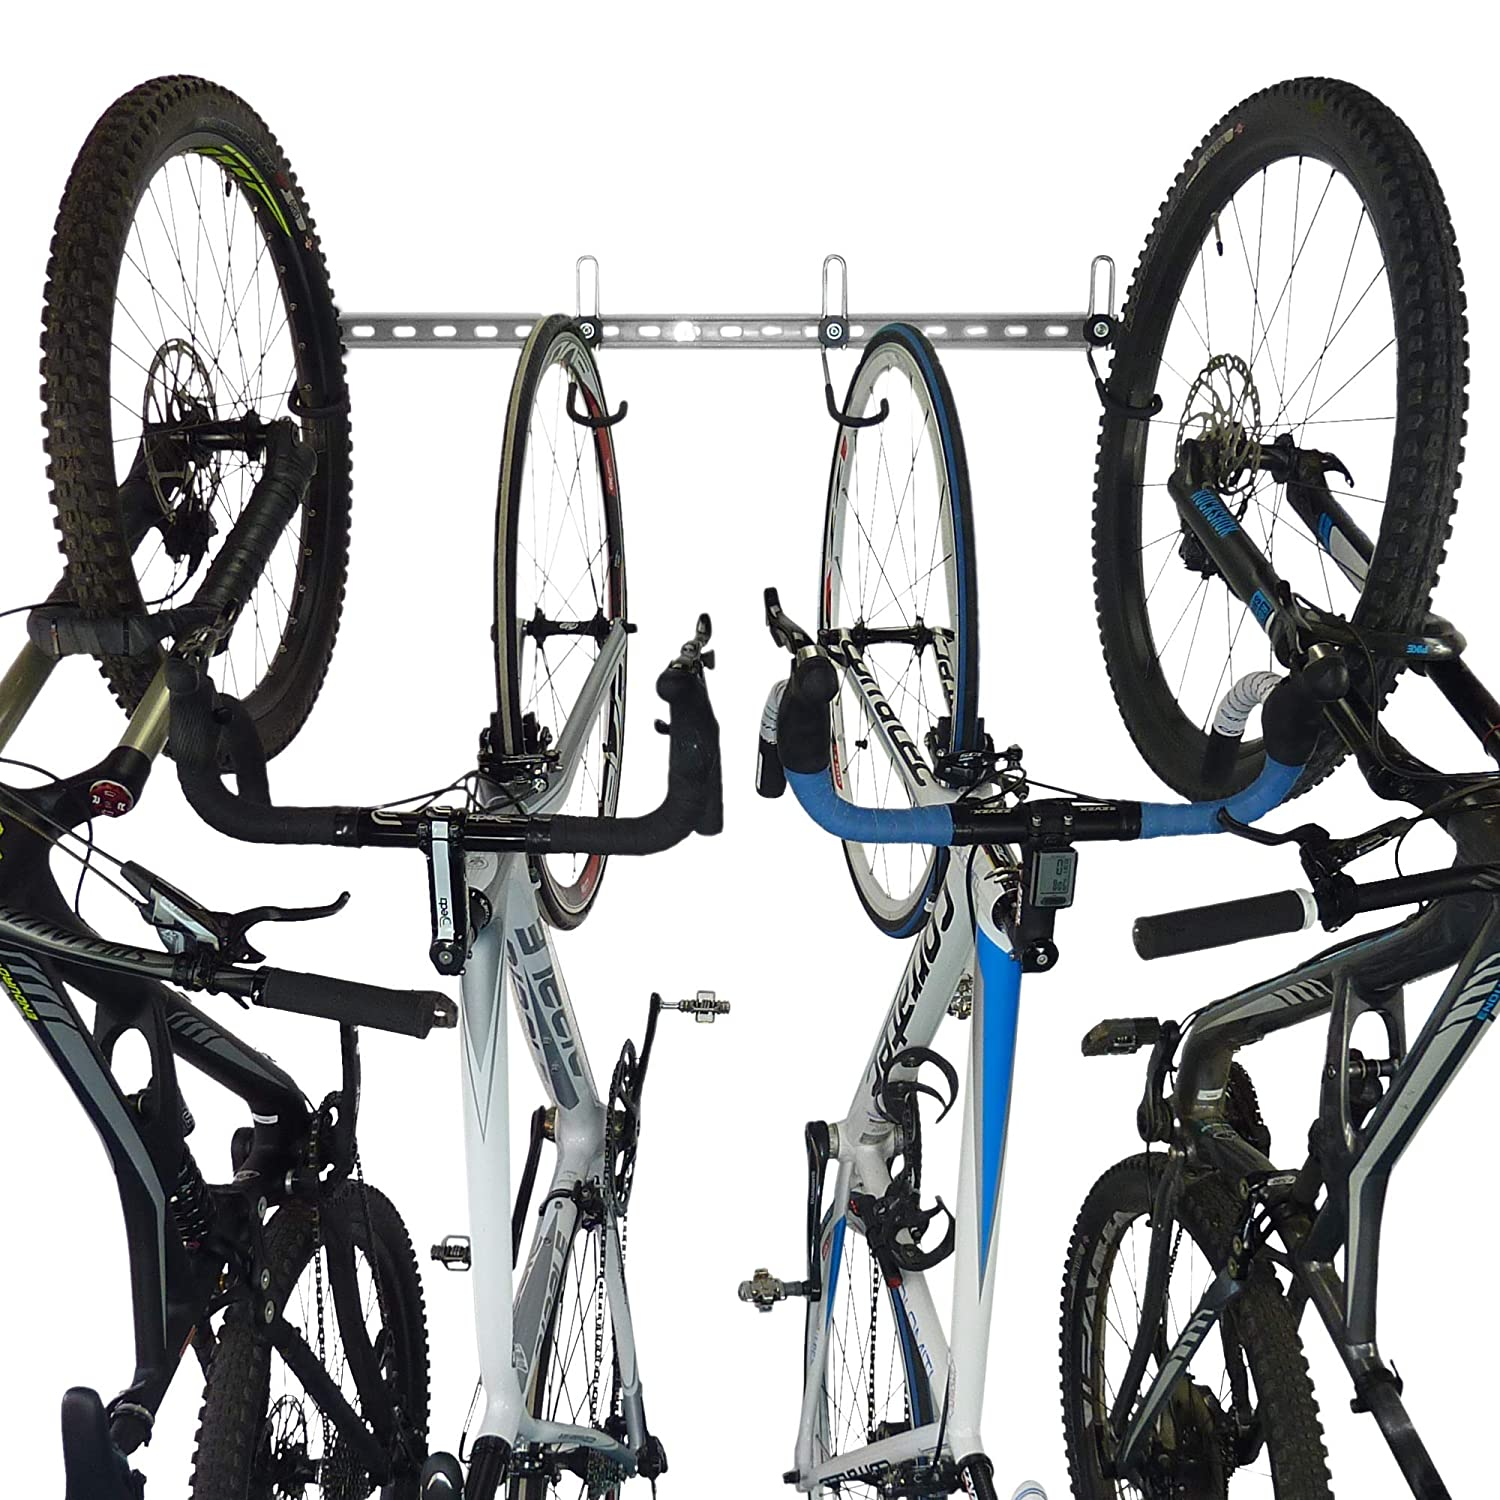 GearHooks Bike Storage Rack   Modular Bike Wall mount Storage System, Heavy Duty & Made In The UK   For Use with All Bikes Including Mountain Bikes & Road Bikes